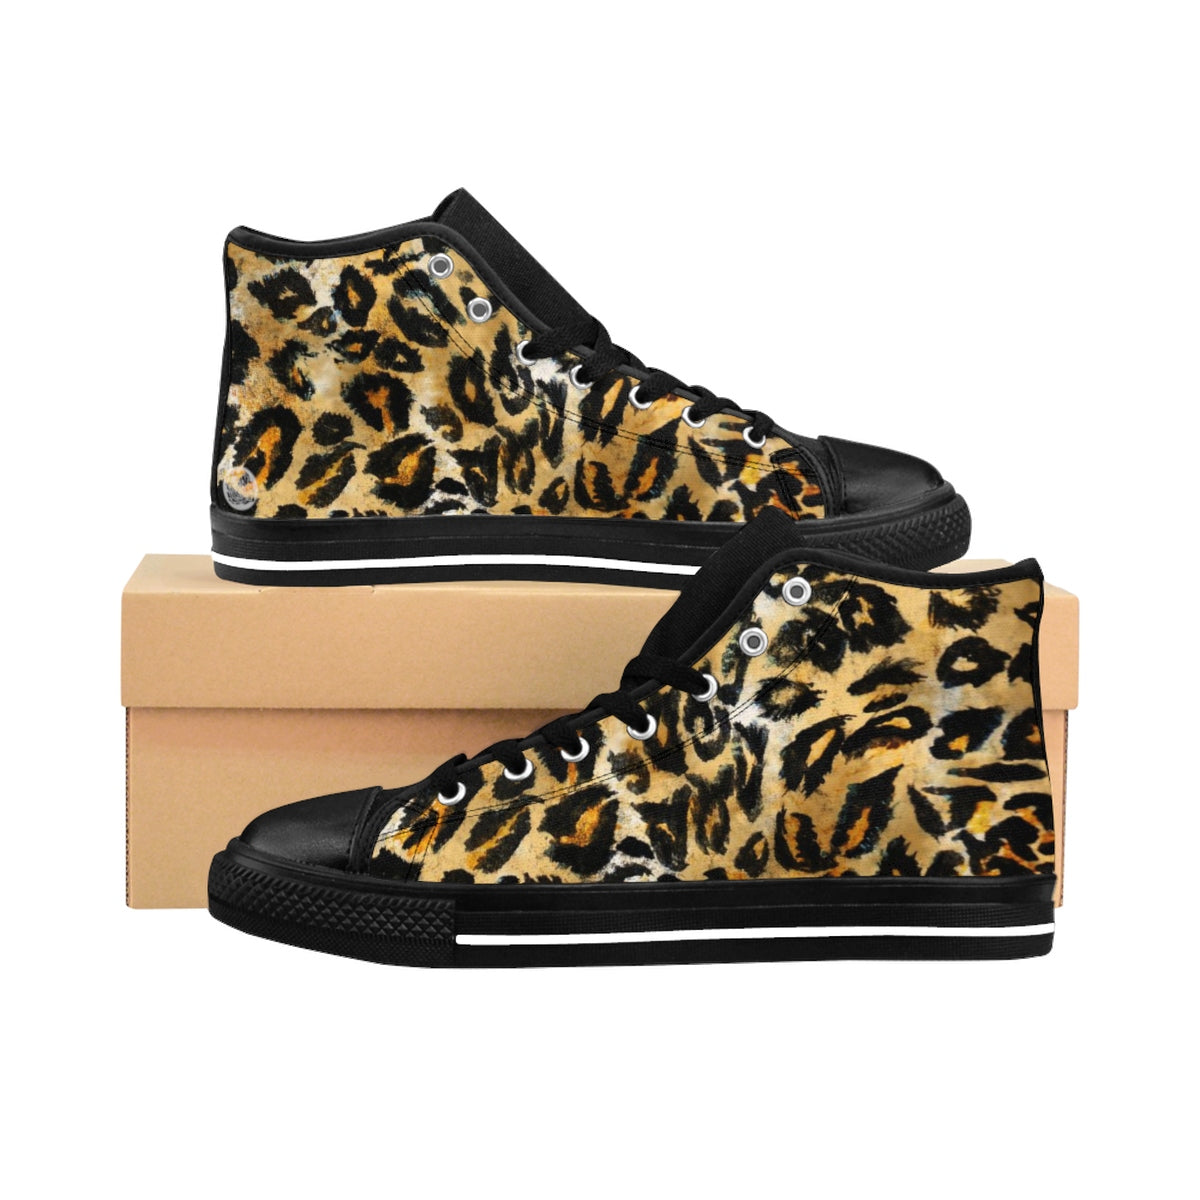 Brown Snow Leopard Print Men's Sneakers, Leopard Animal Print Men's High Top Sneakers-Men's High Top Sneakers-US 9-Heidi Kimura Art LLC